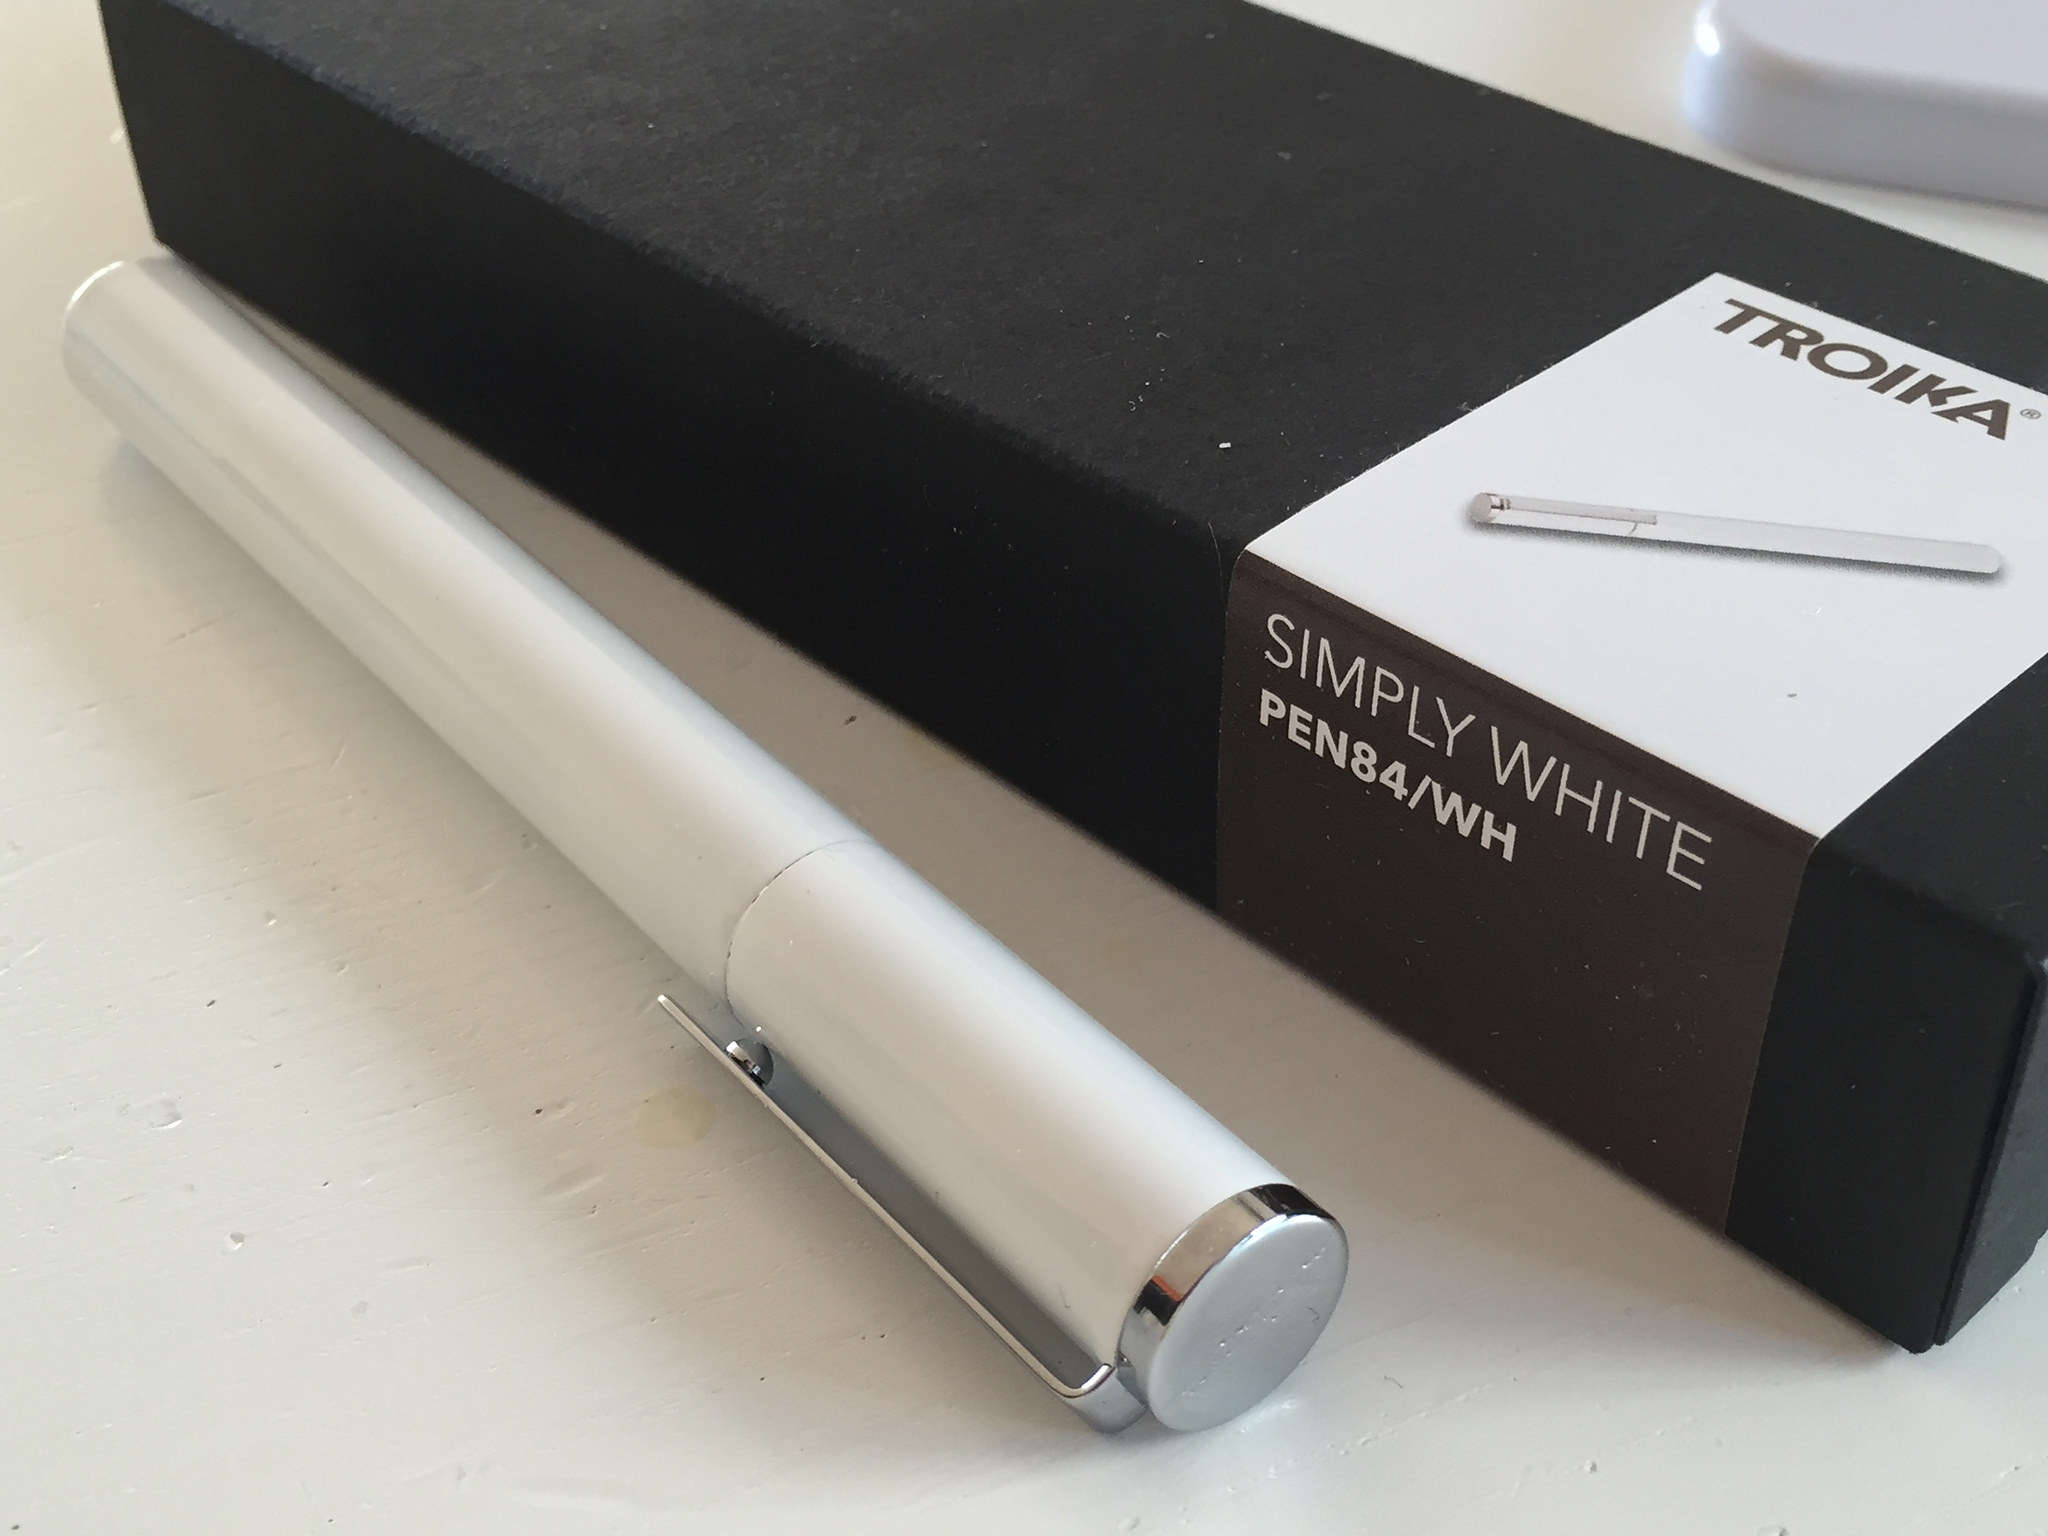 Troika simply white_rollerball_fountain pen